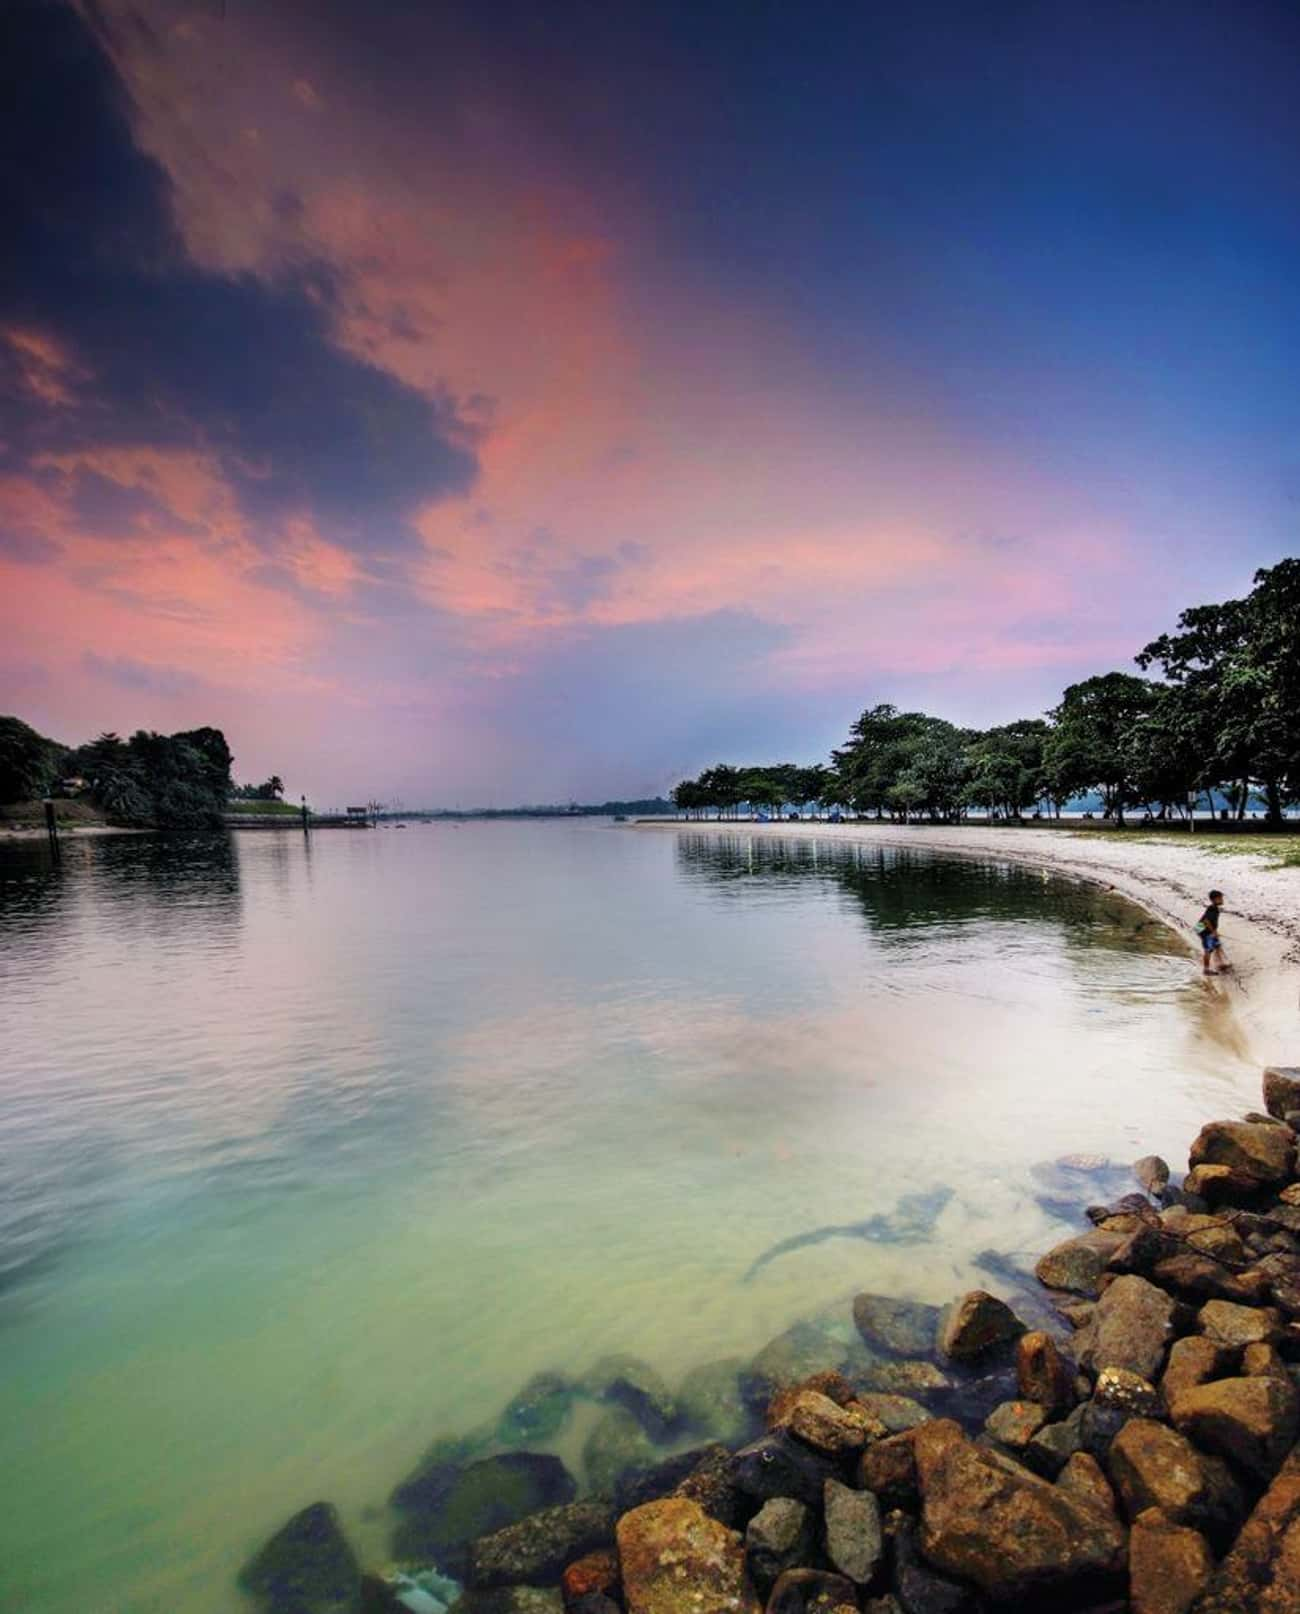 People Hear Screams At Changi  is listed (or ranked) 1 on the list 12 Creepy Stories About Haunted Beaches